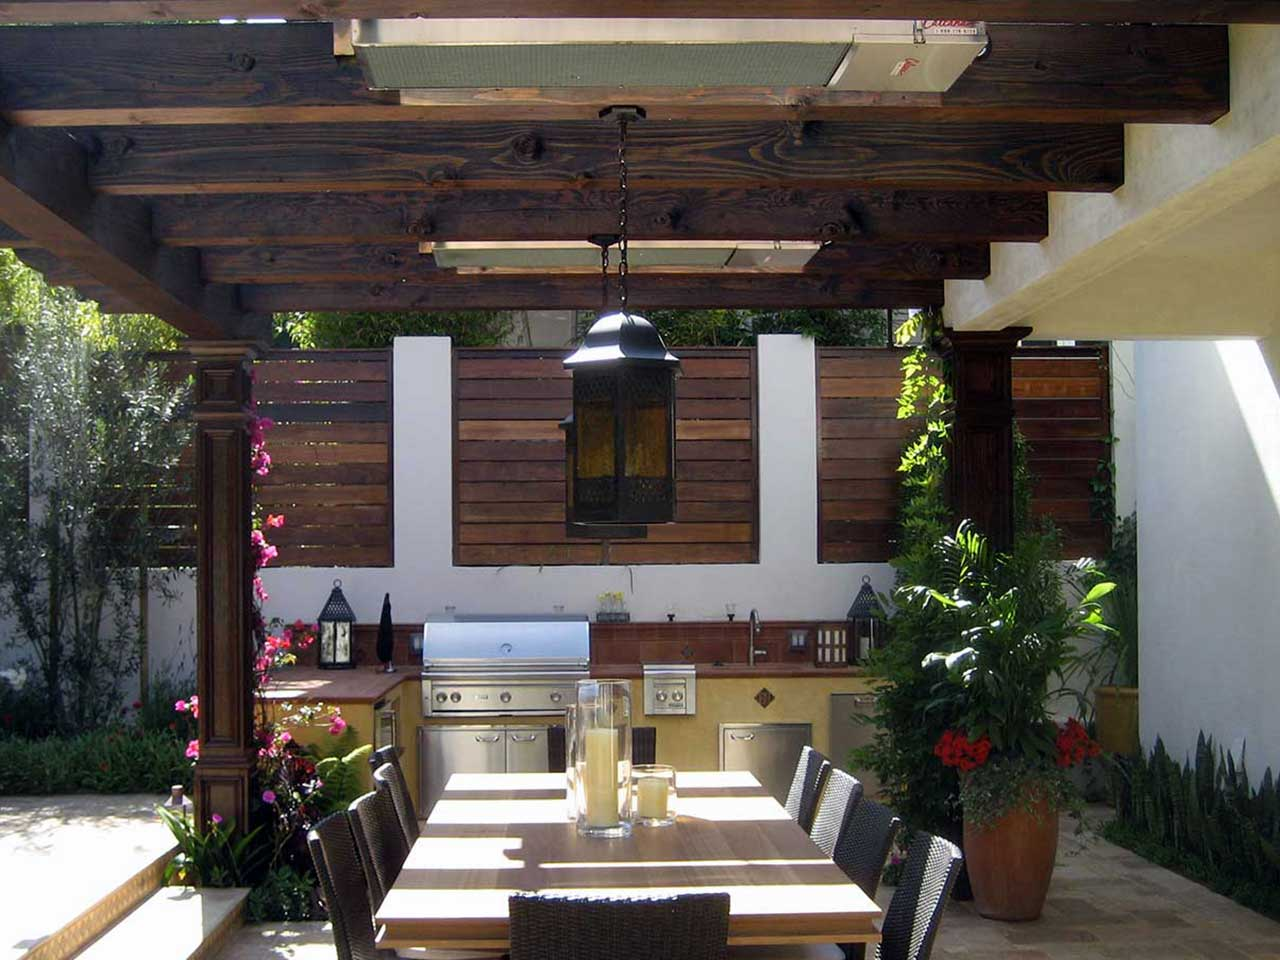 Efficient infrared heating patio heaters radiant stainless steel